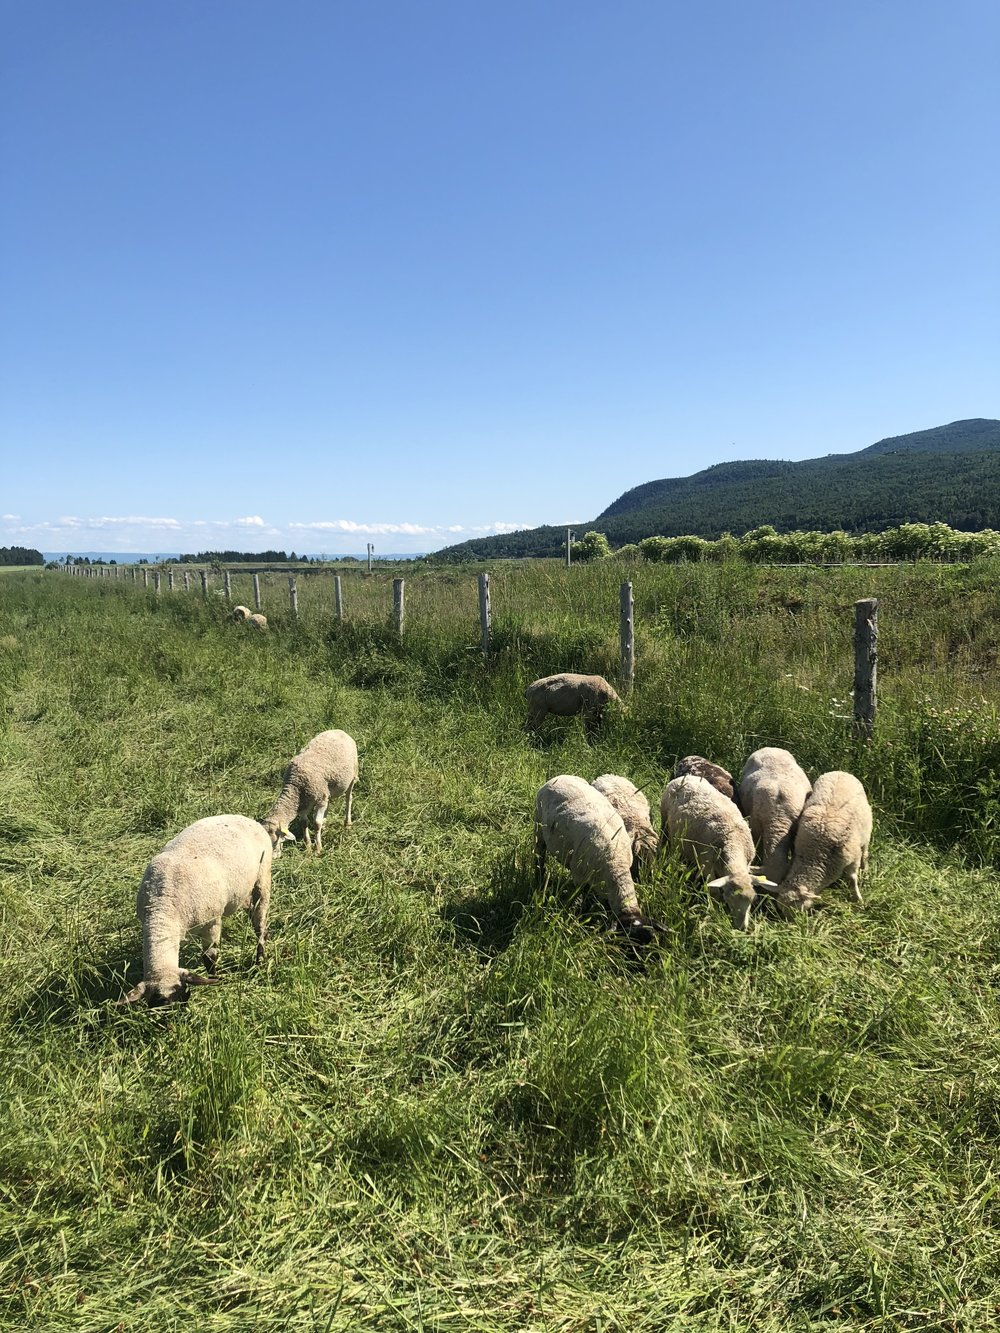 The livestock farm at Le Germain Charlevoix